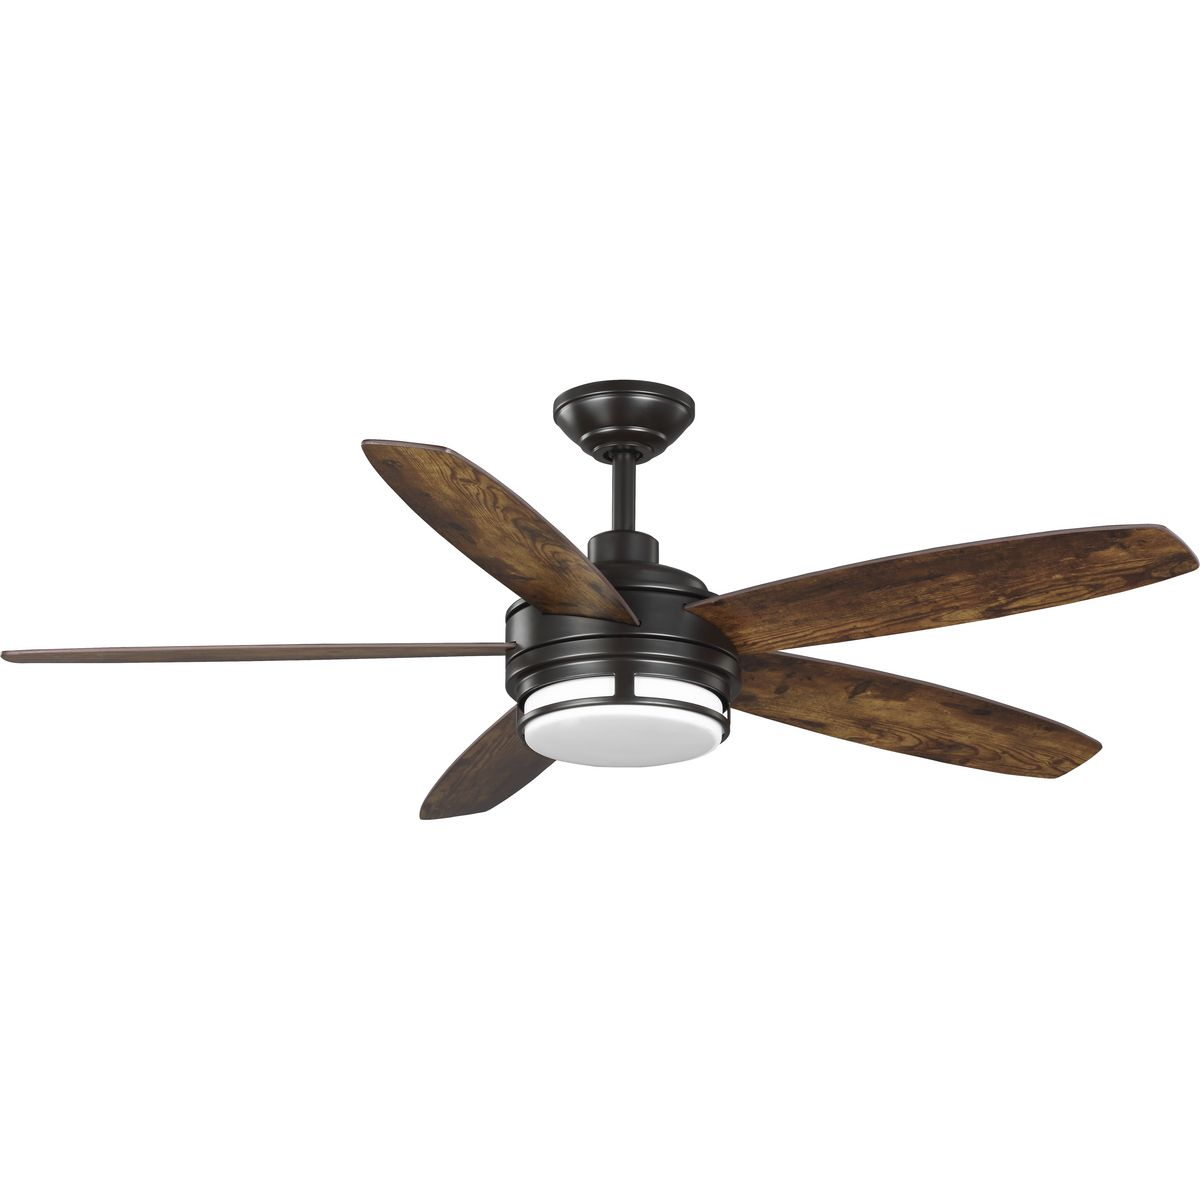 Albin Collection 54 Indoor Outdoor Five Blade Bronze Ceiling Fan P250036 129 30 Progress Lighting